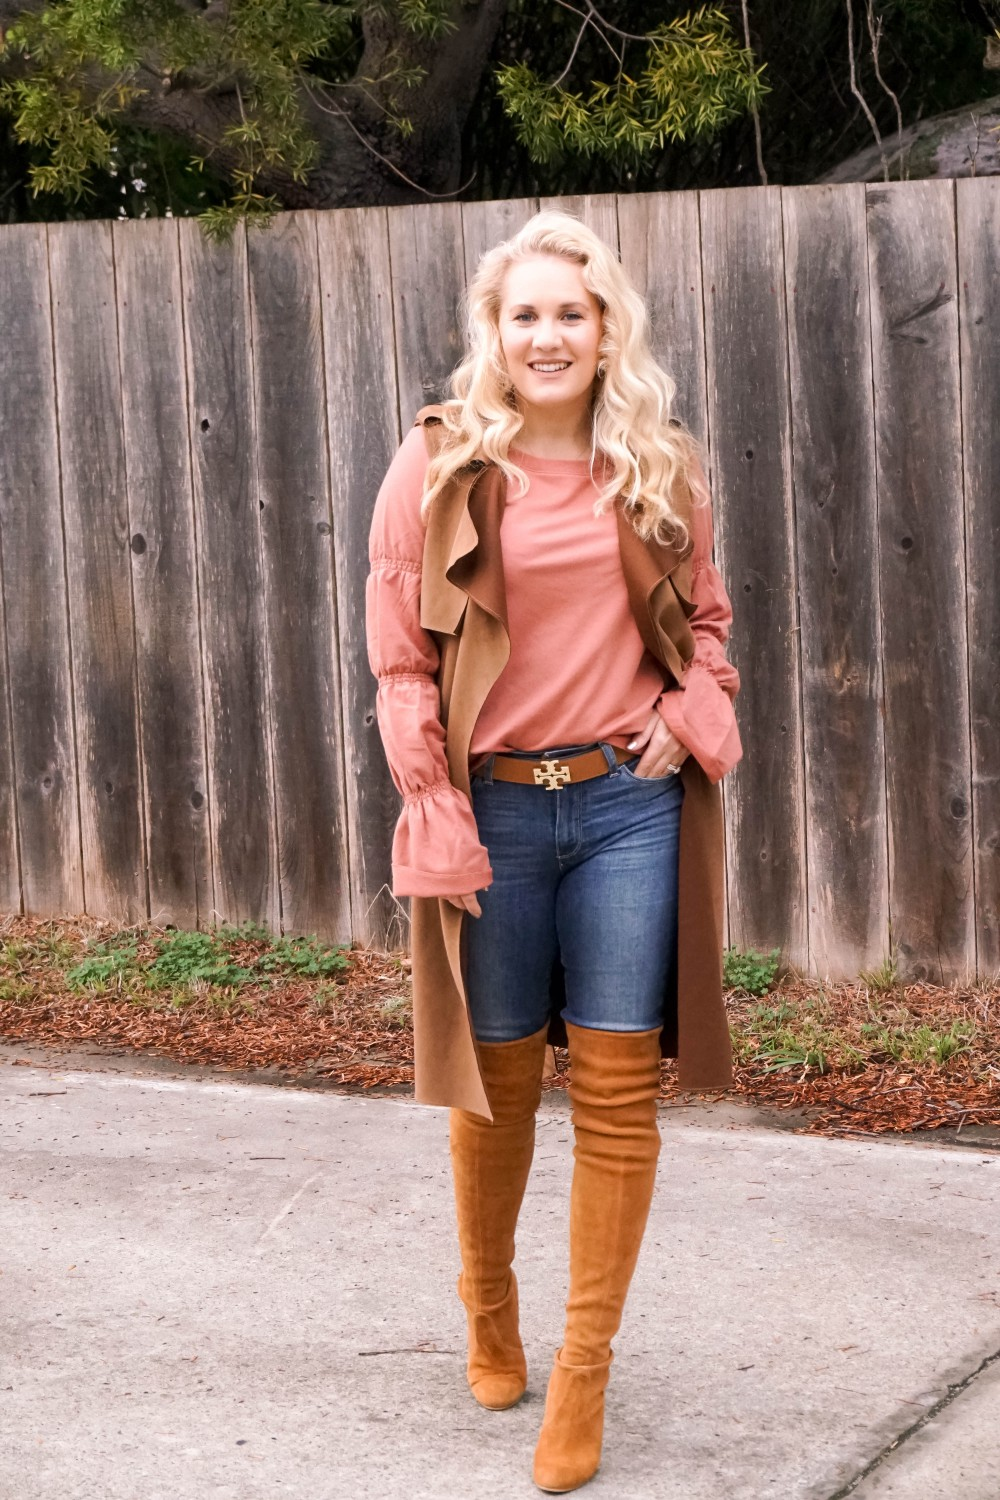 Flirty Flare Cuff Sweatshirt, Hinge Sweatshirt, Statement Sleeve Trend, Statement Sleeve Sweatshirt, Outfit Inspiration, Mom Style, Have Need Want